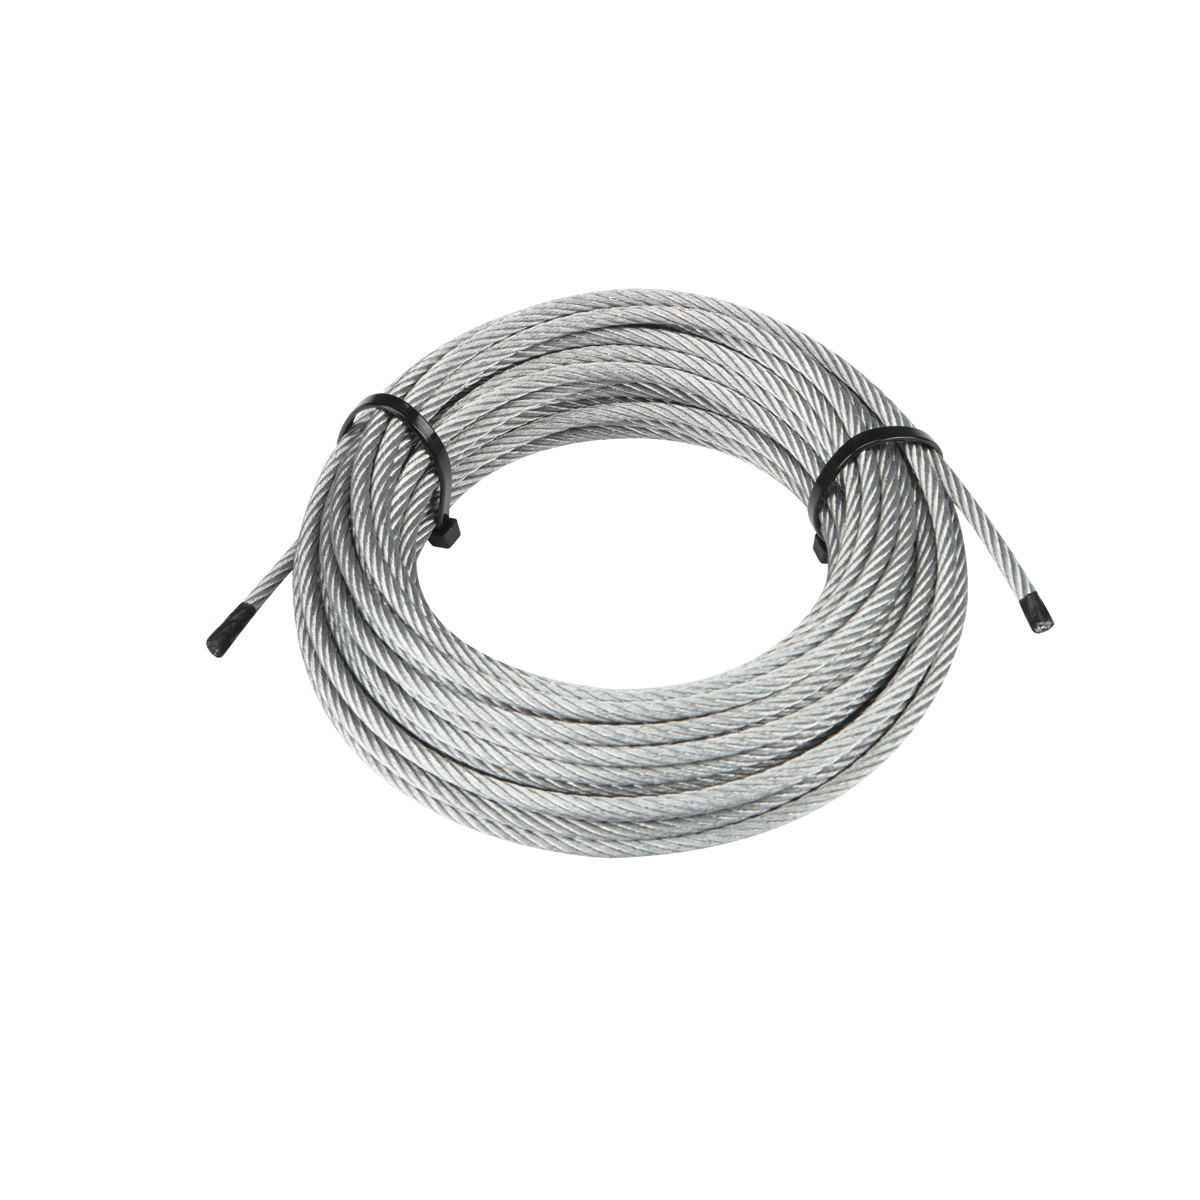 50 ft x 3 16 in aircraft grade wire rope